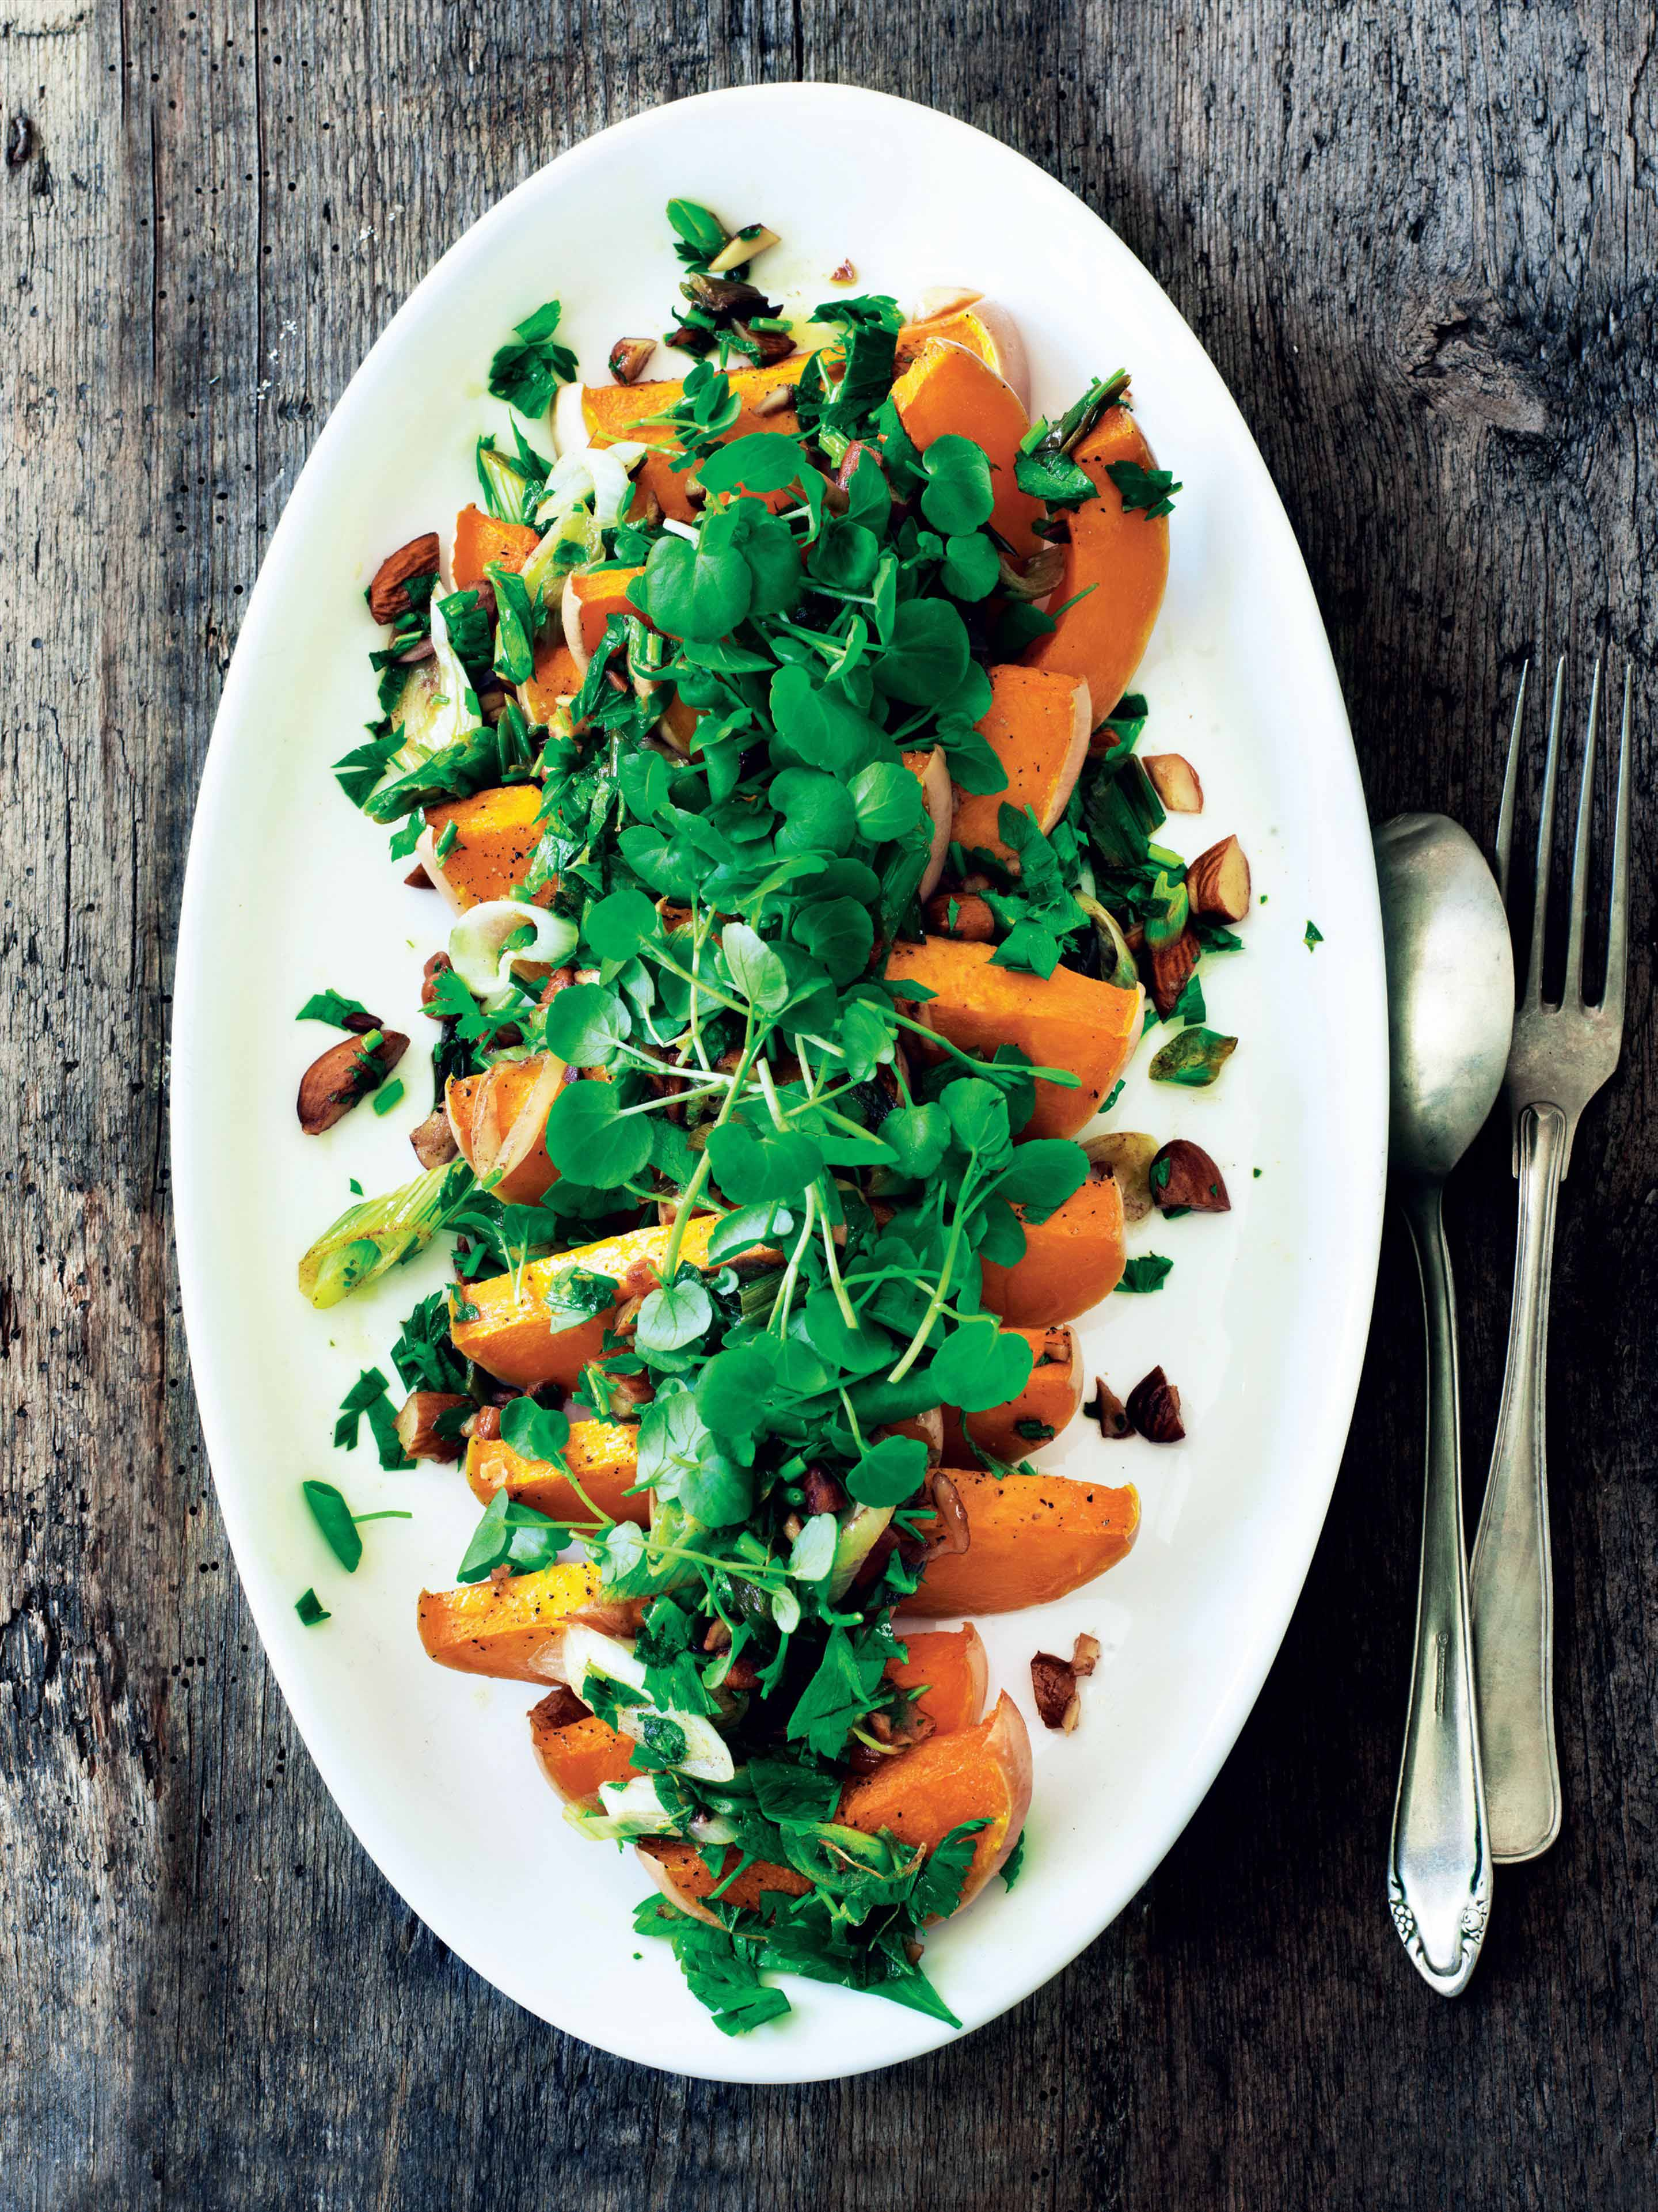 Warm butternut squash with almonds and herbs